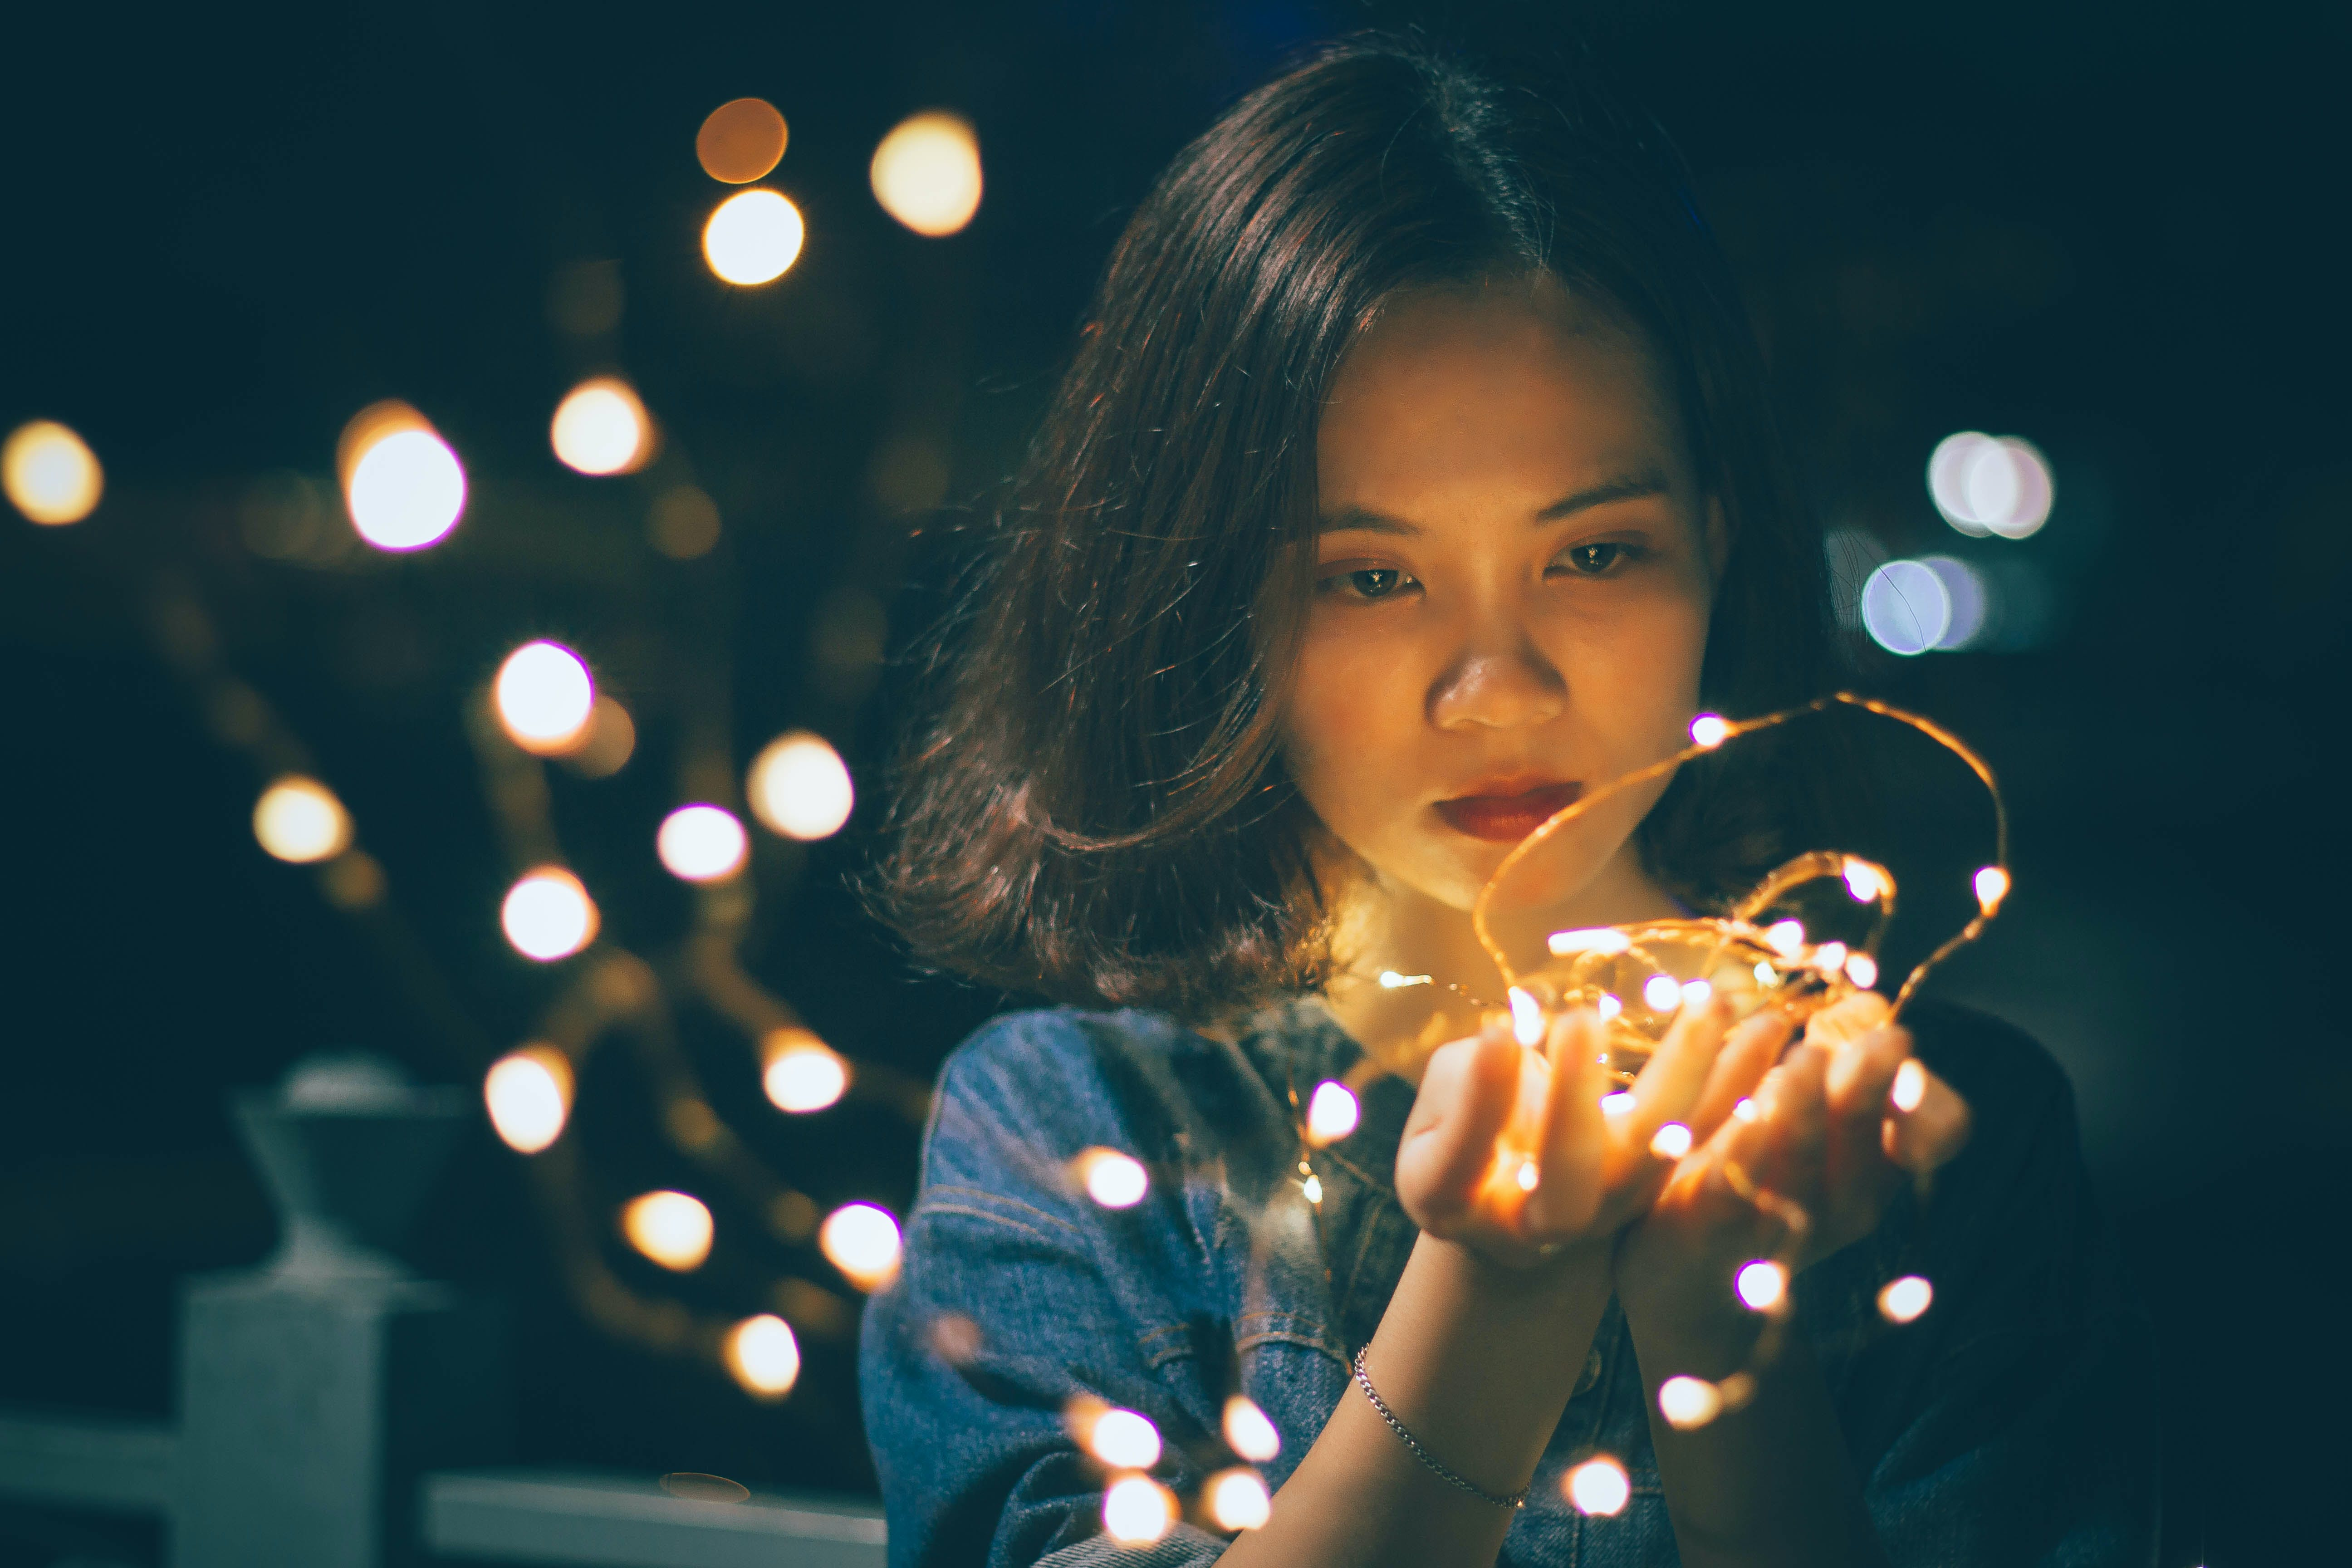 Close-Up Photography of Woman Holding Sting Lights